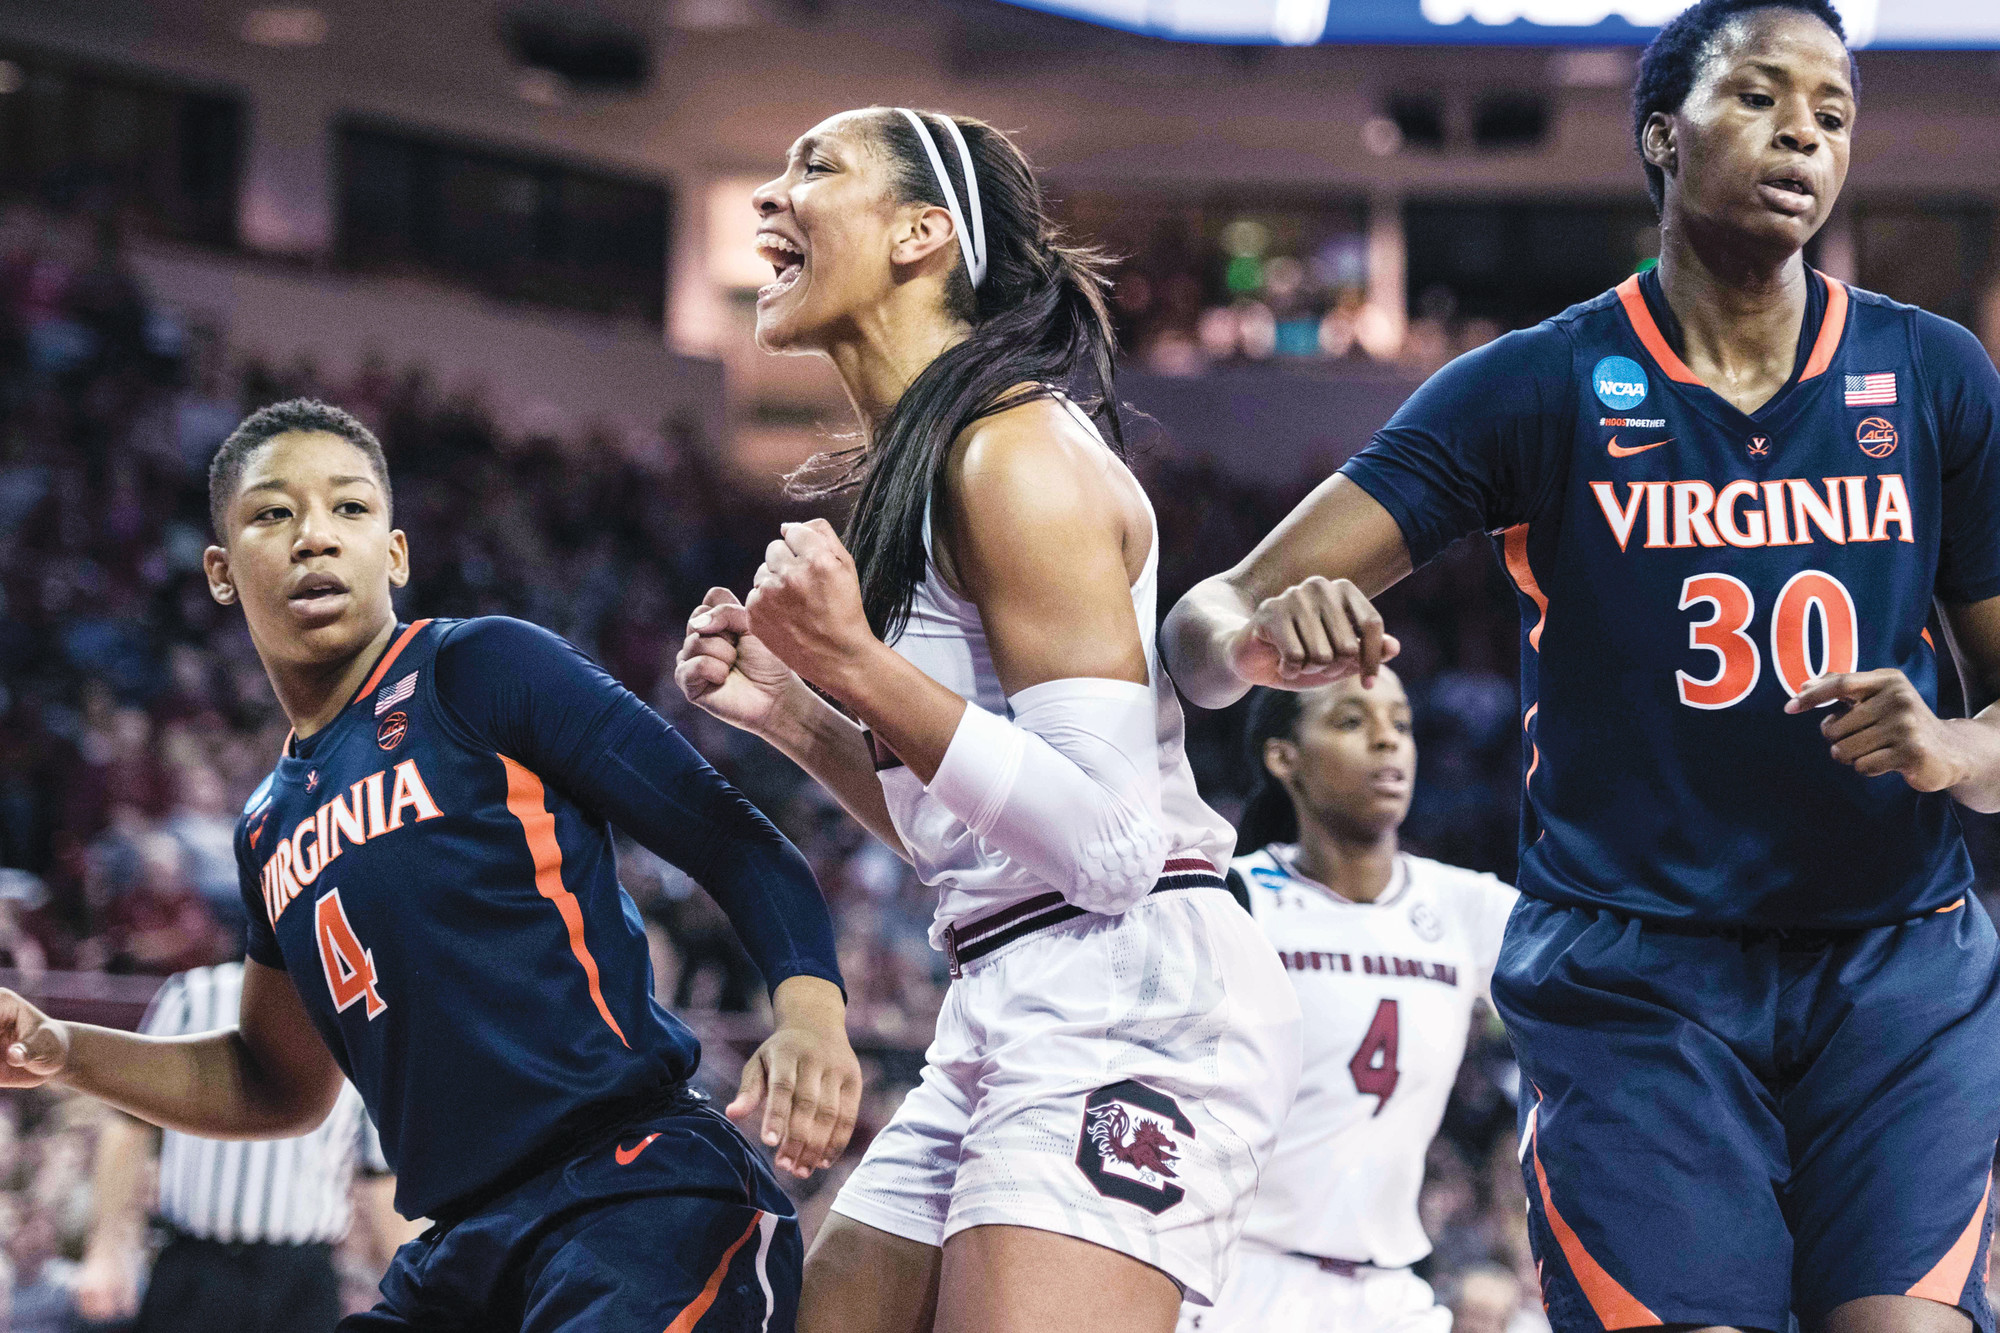 South Carolina forward A'ja Wilson, center, celebrates a basket against Virginia guard Dominique Toussaint (4) during the first half of the Gamecocks' second-round victory over the Cavaliers in the NCAA women's basketball tournament on Sunday in Columbia.